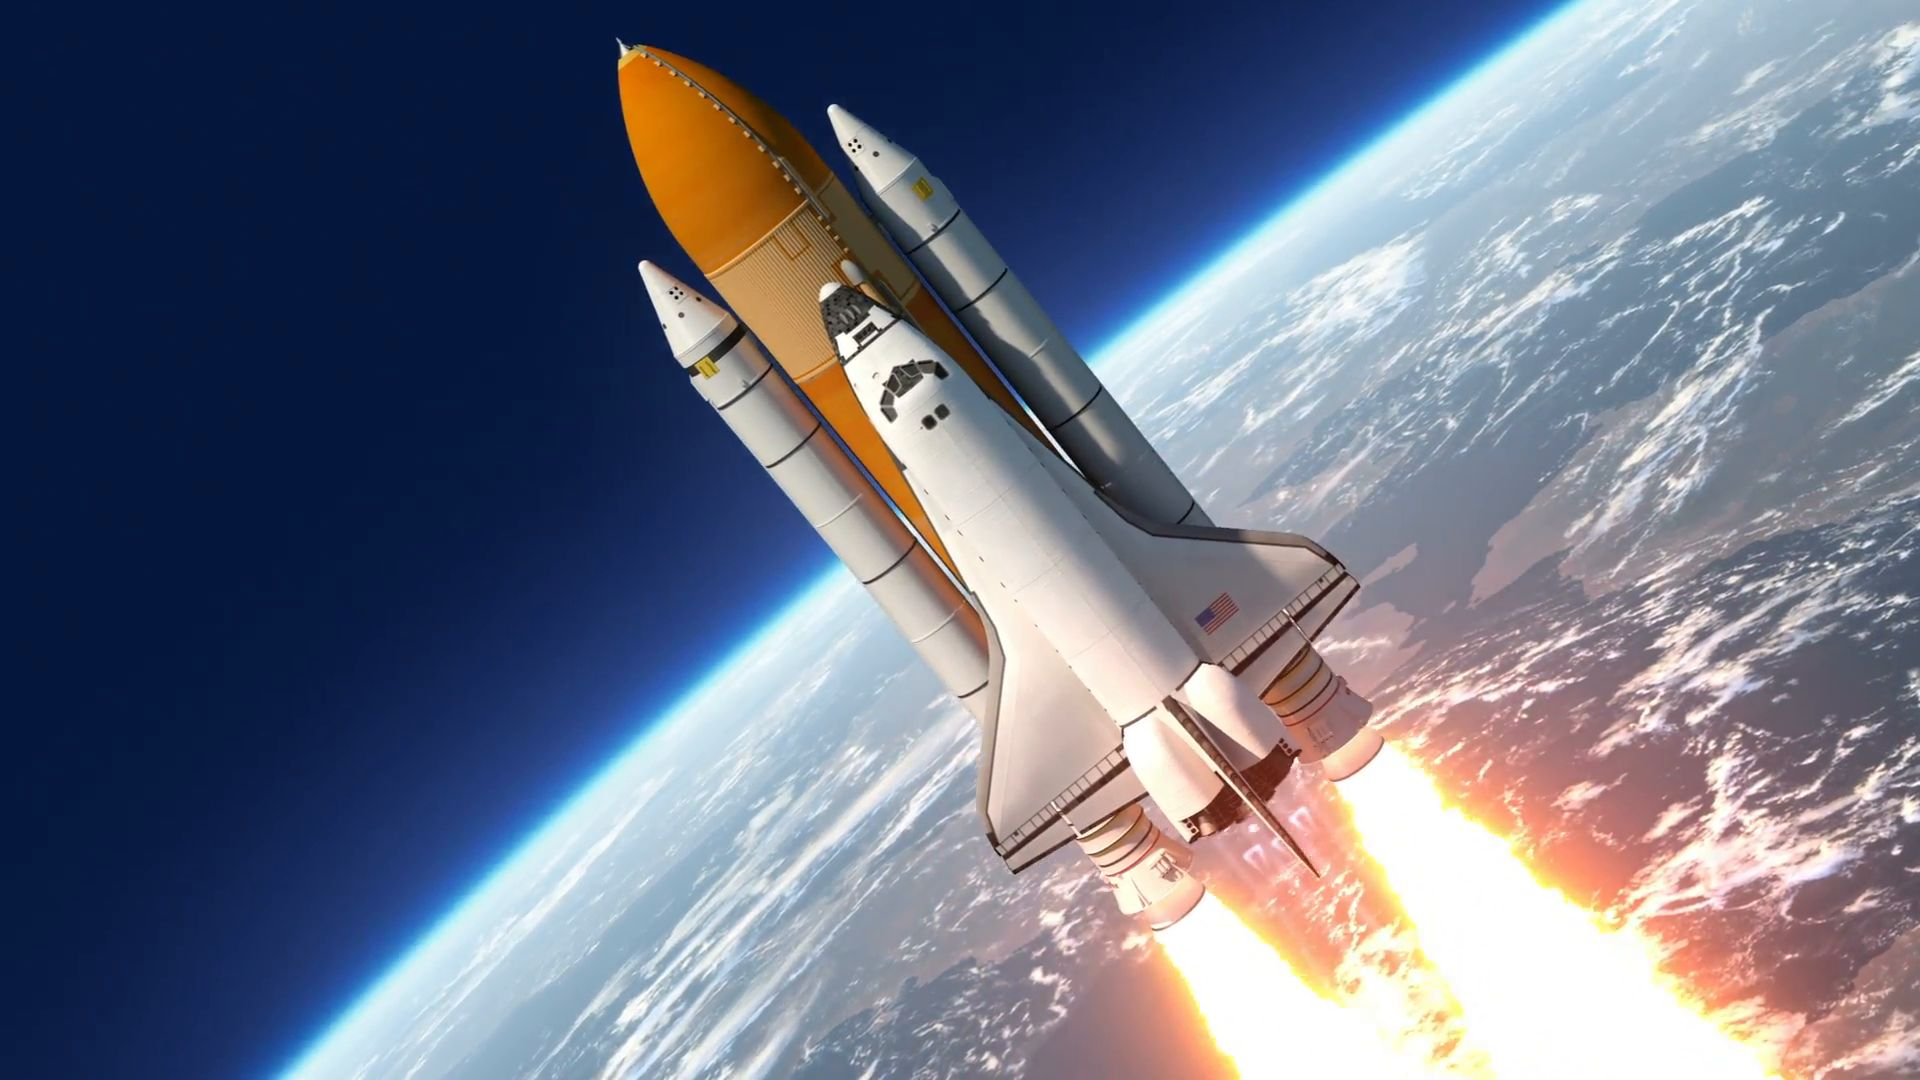 space-shuttle-launch-3d-animation_snm6vdbl__F0005